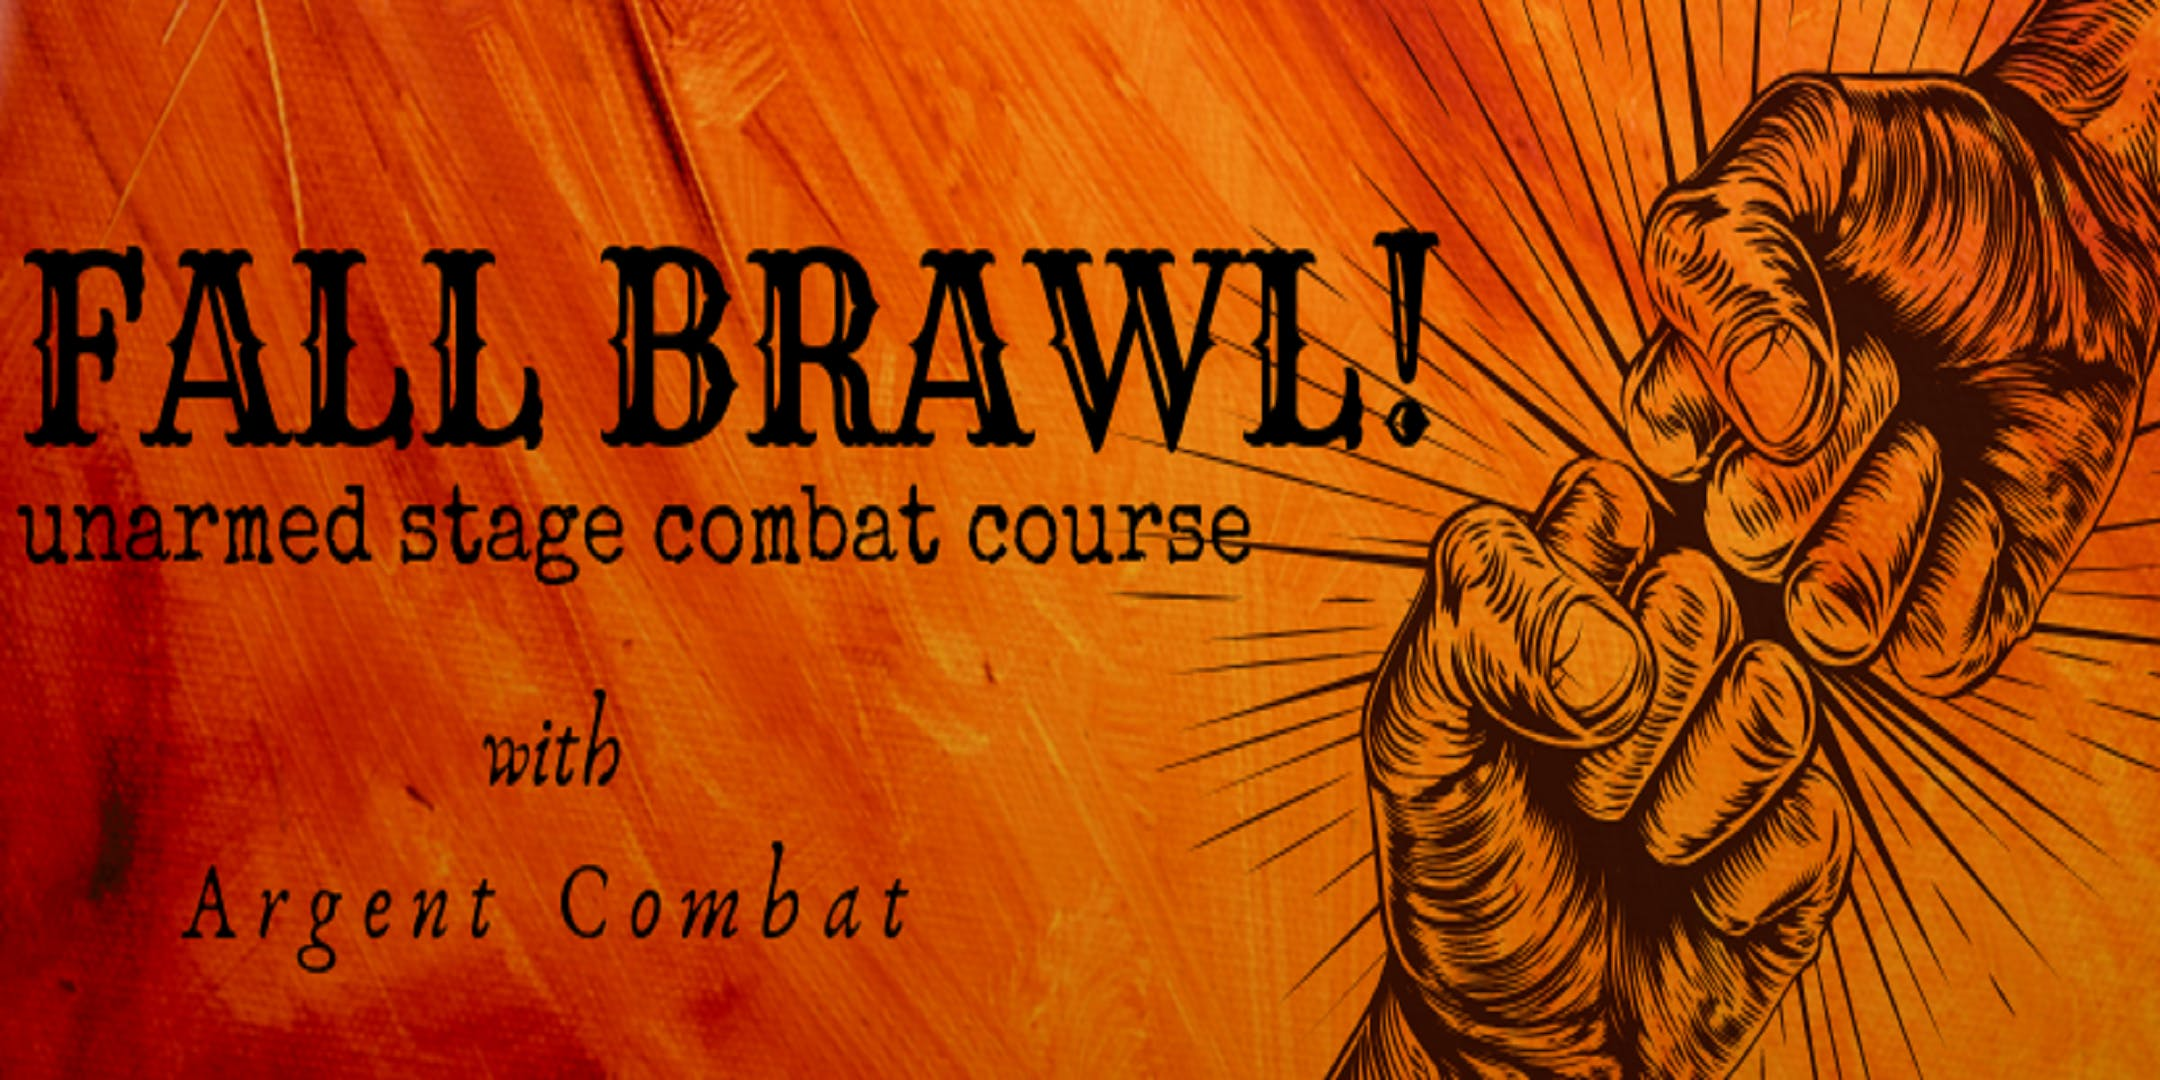 FALL BRAWL!: Unarmed Stage Combat Course